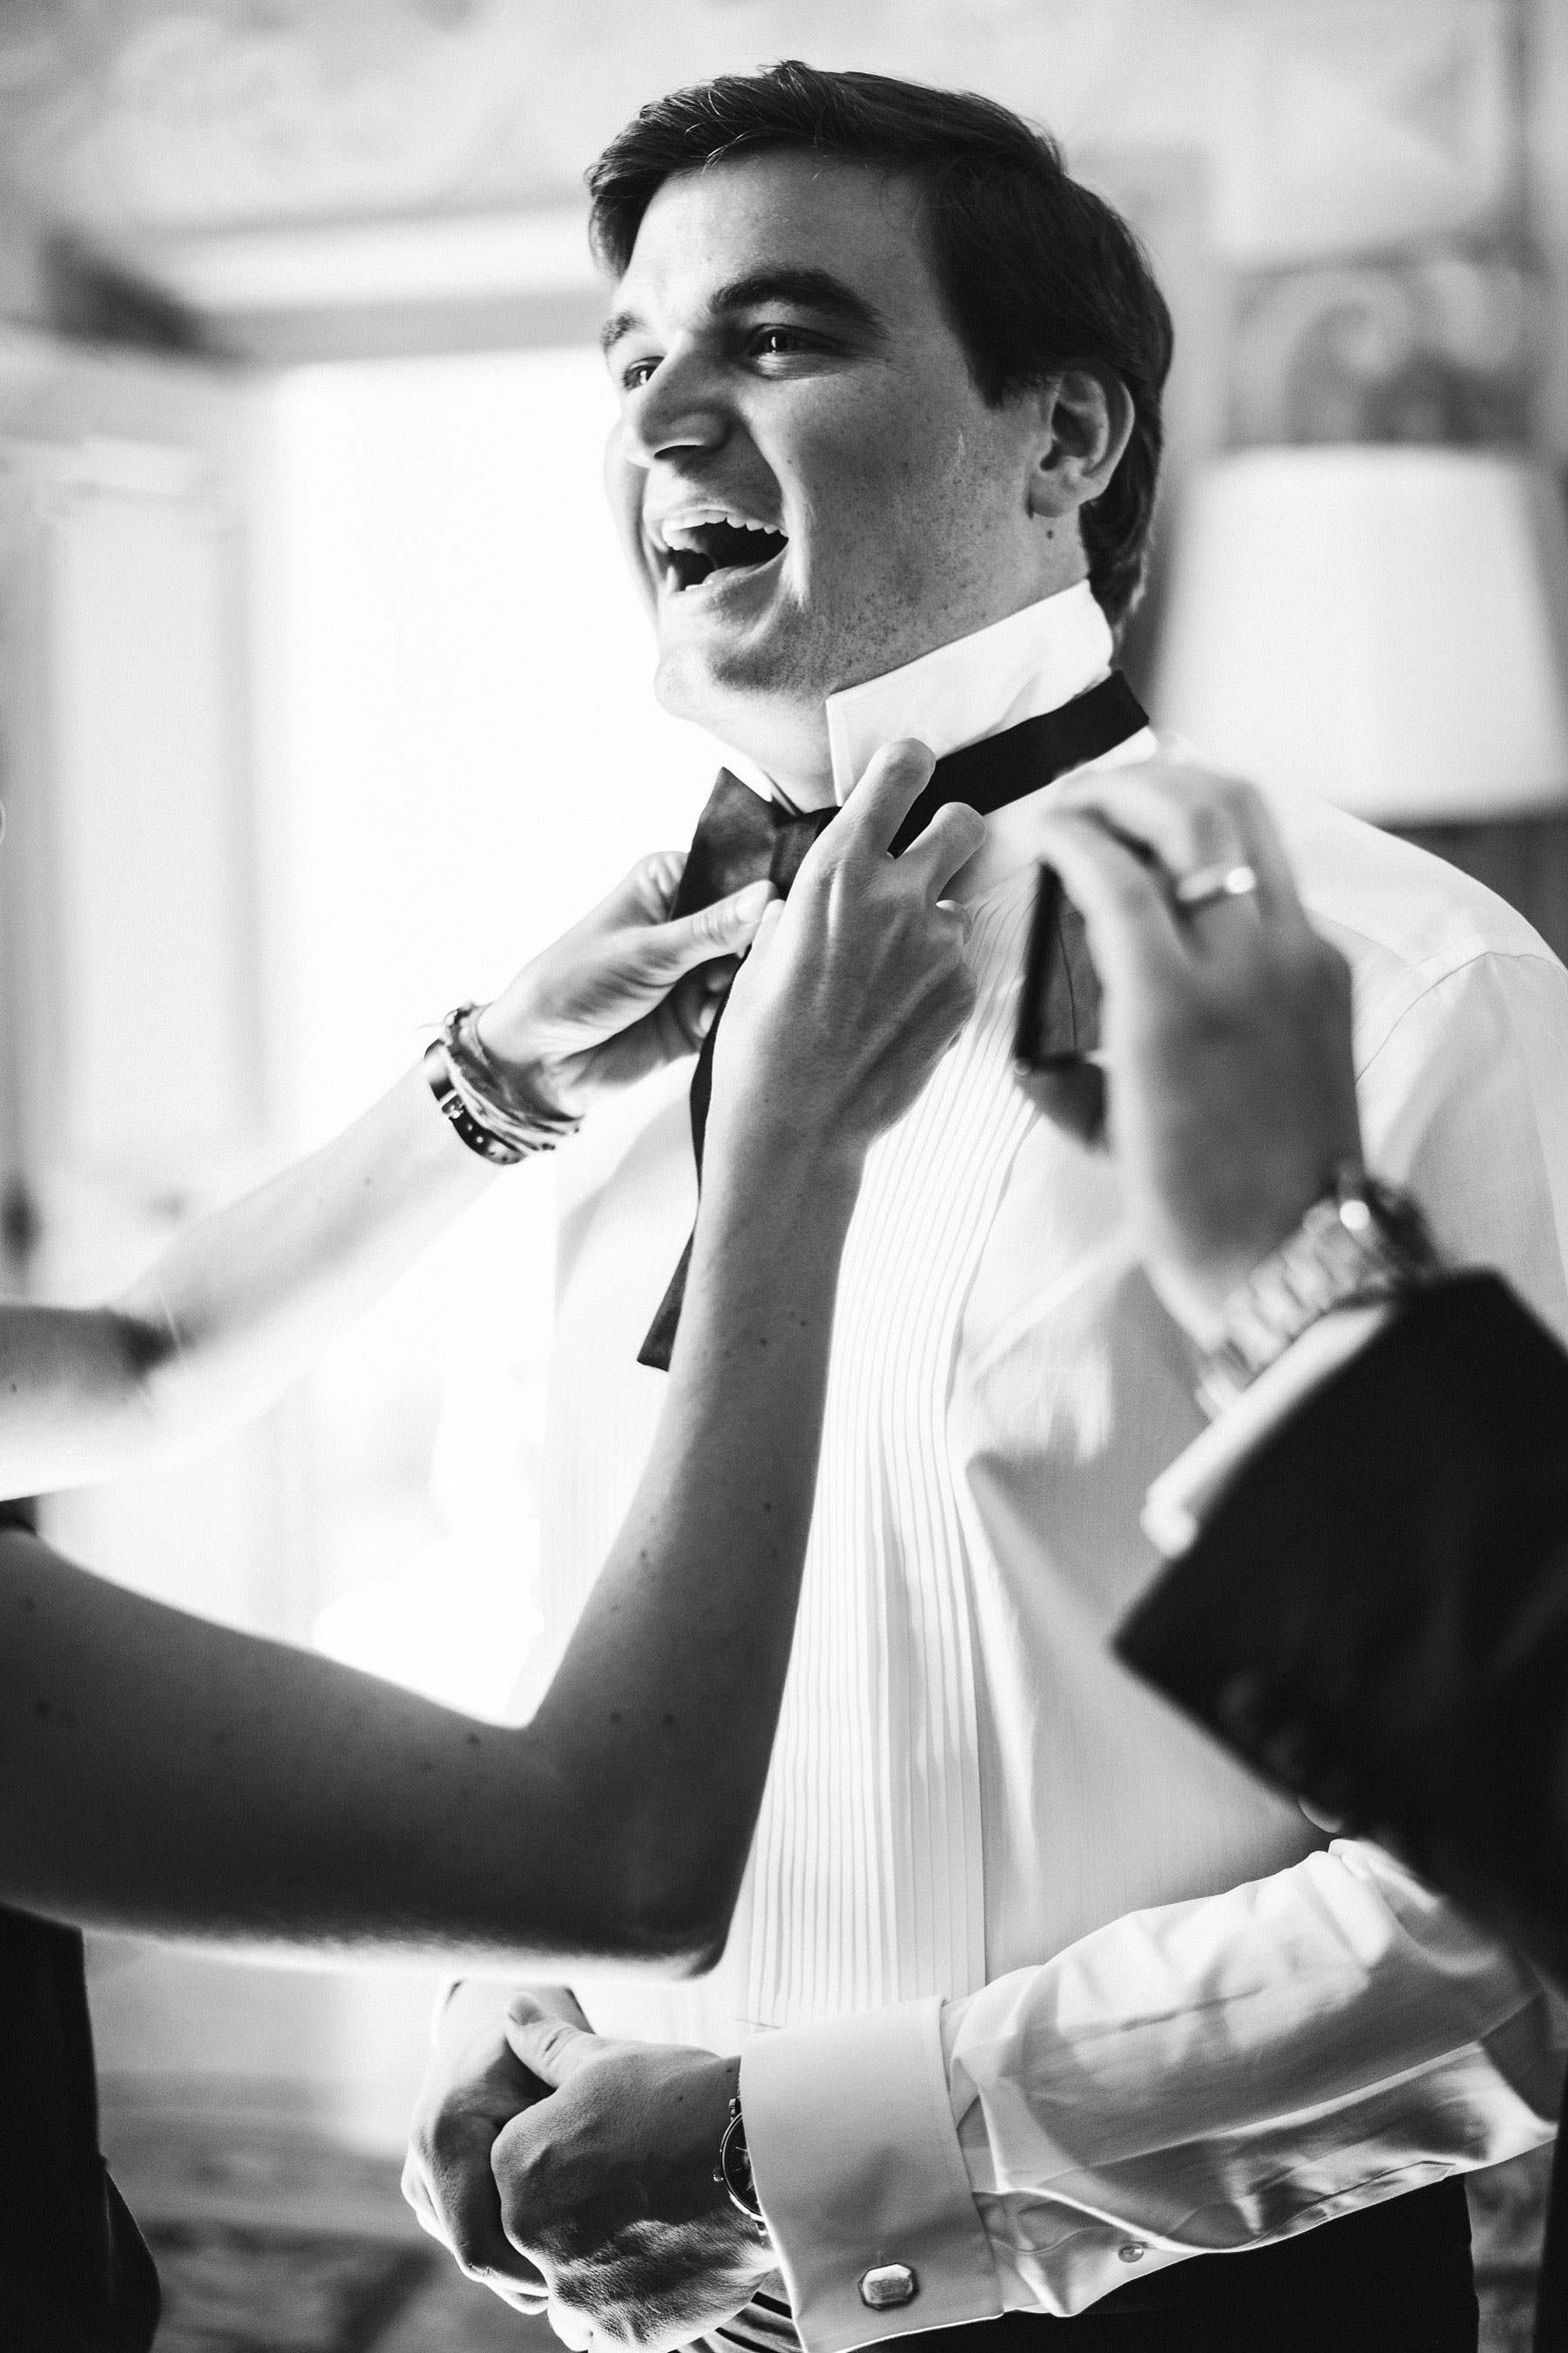 Lovely candid photo of the groom during getting ready at Villa Mangiacane, Tuscany